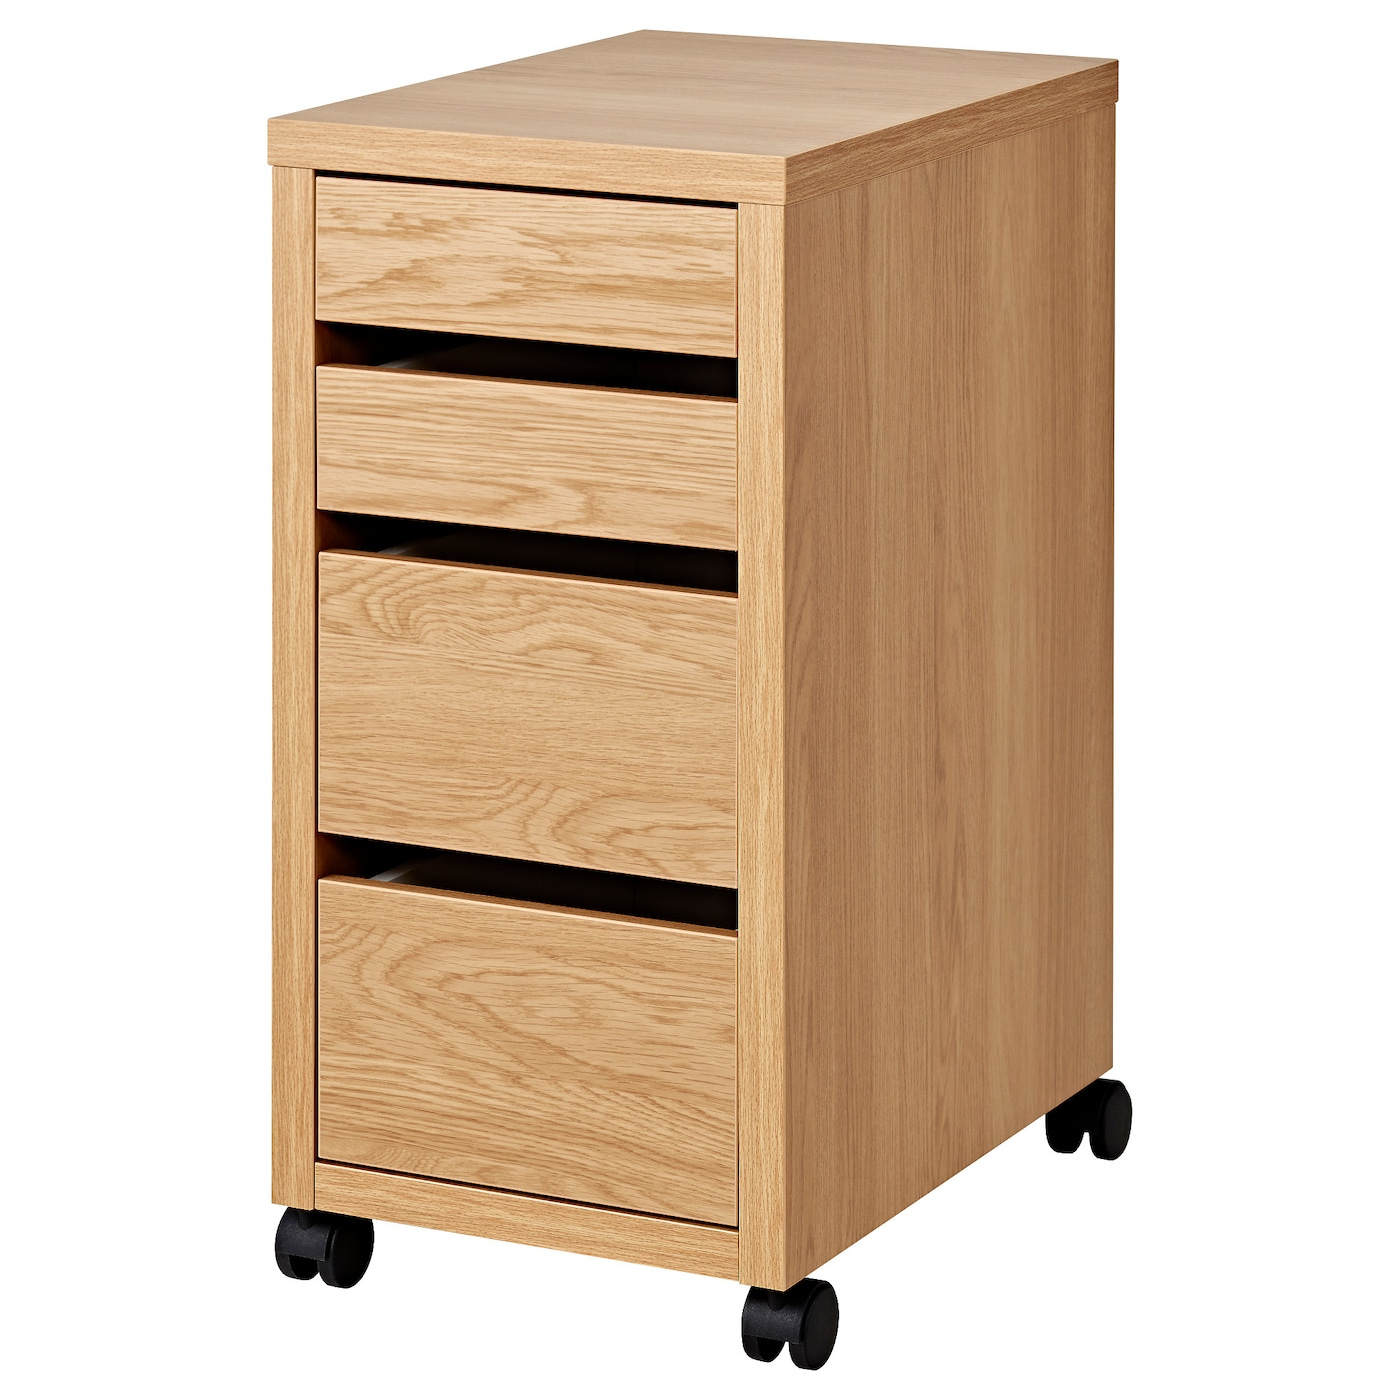 storage cabinets with drawers micke drawer unit on castors oak effect 35 x 75 cm ikea 26854